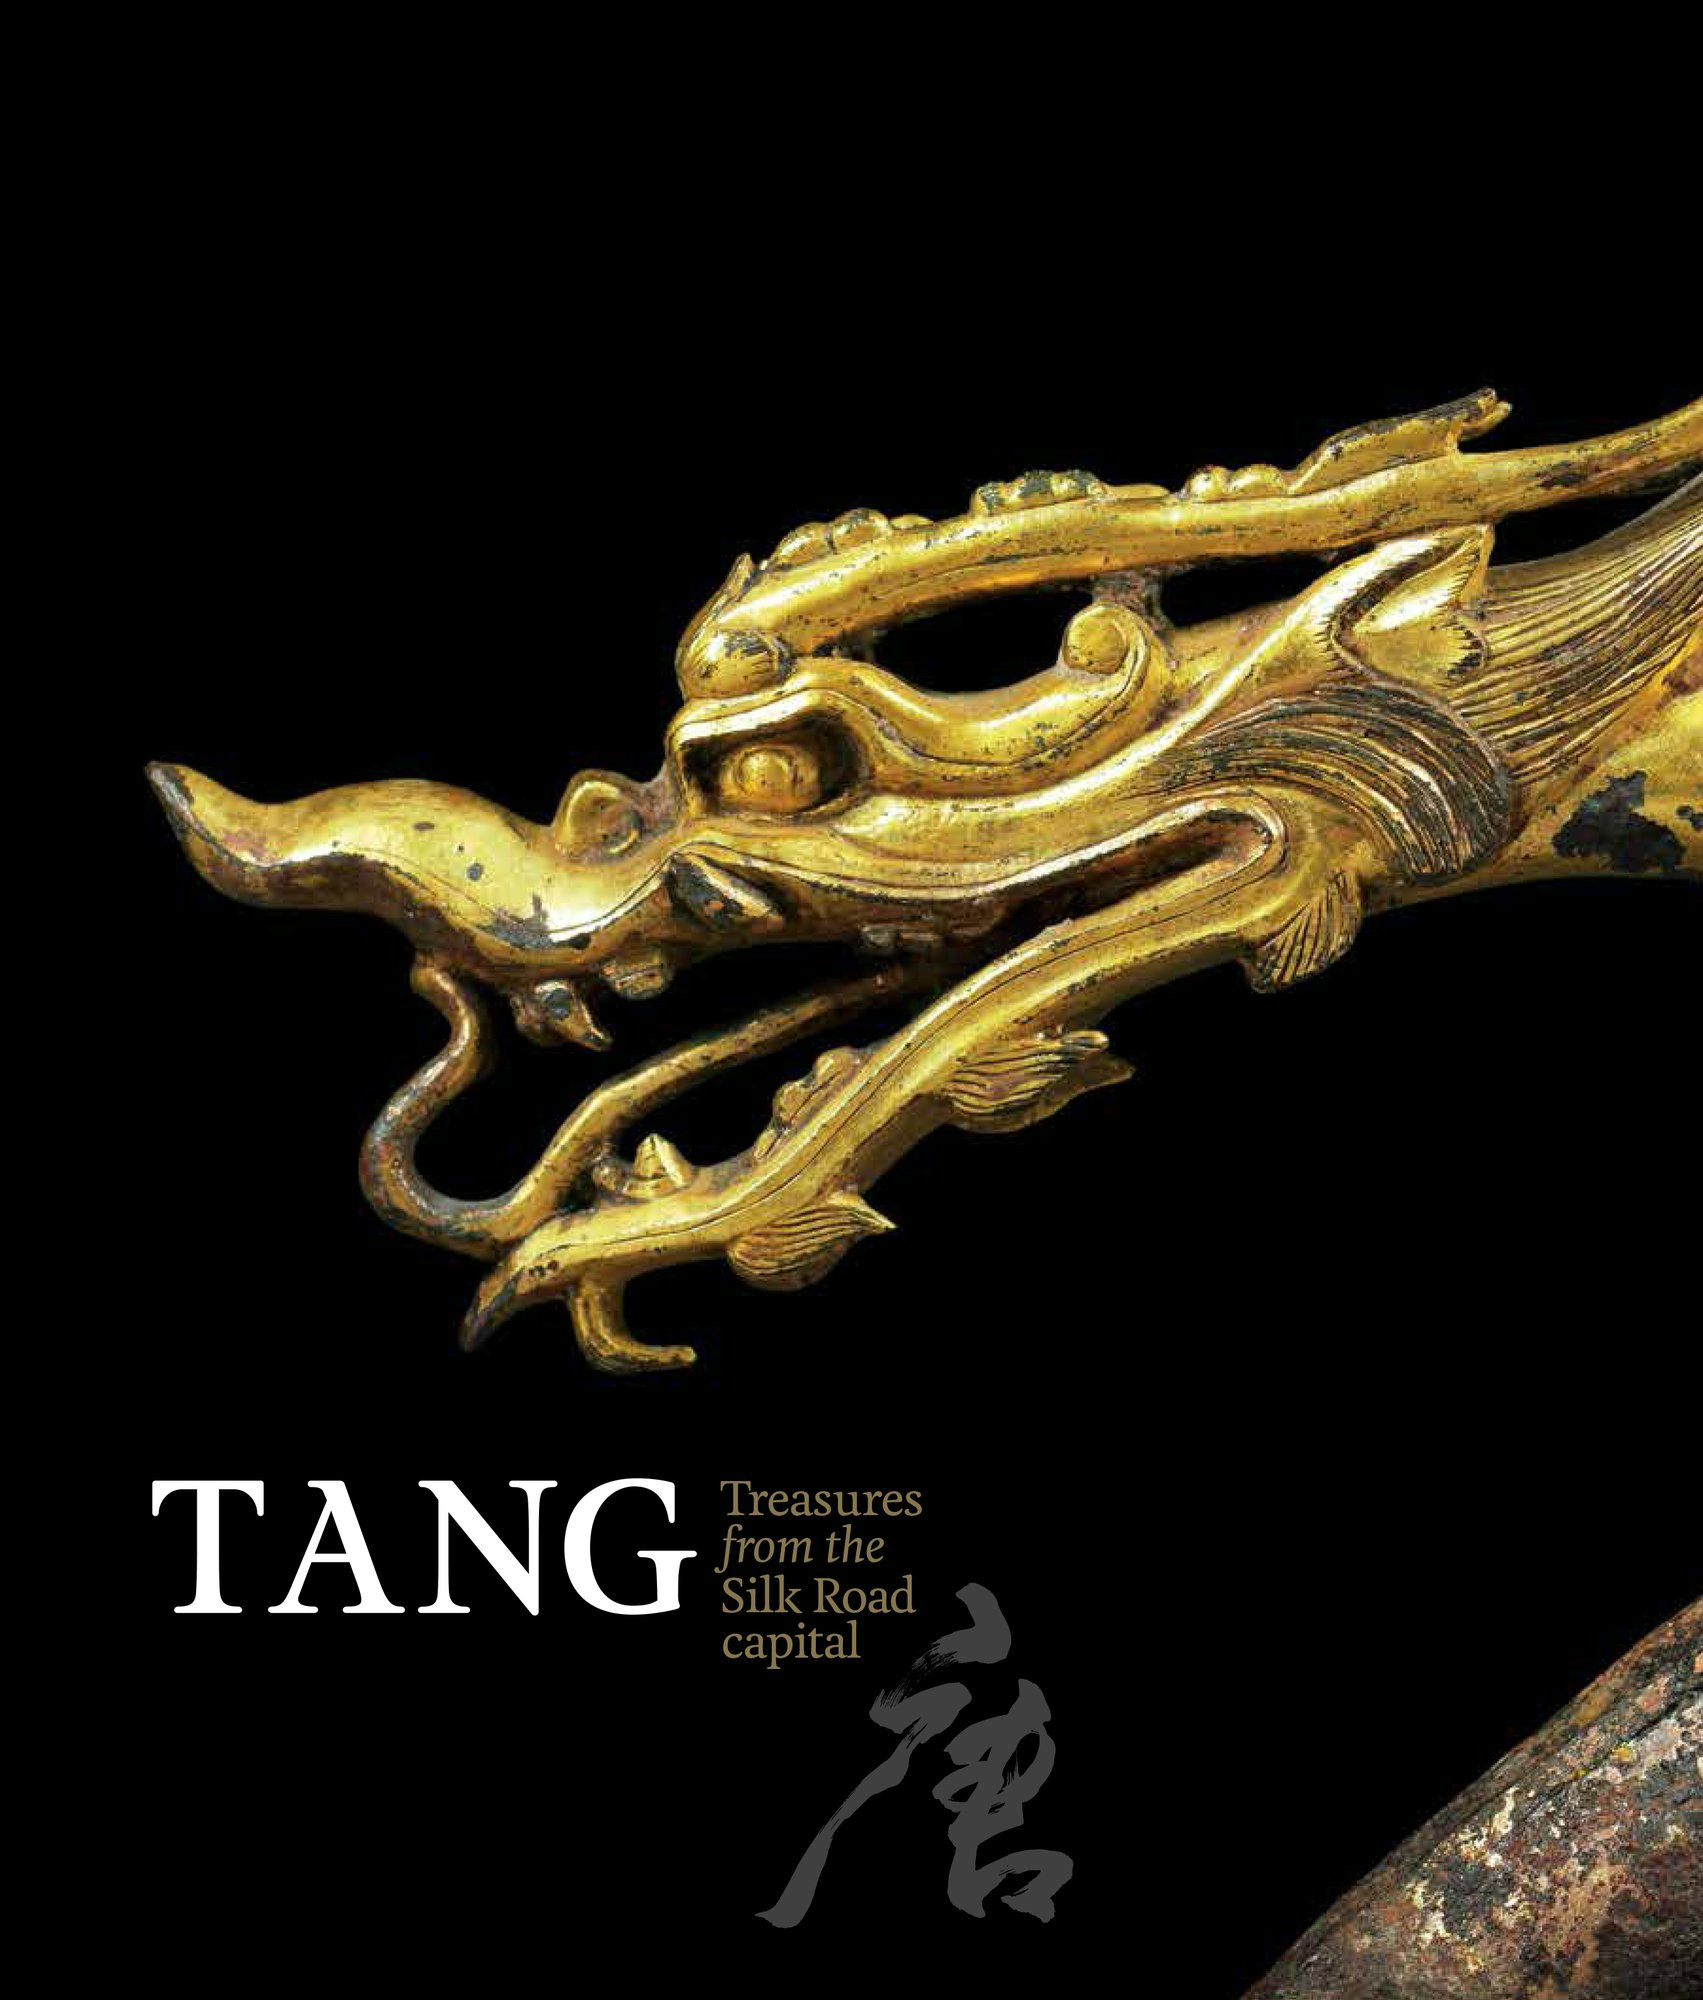 First exhibition in Australia to focus on the art of the Tang Empire on view in Sydney